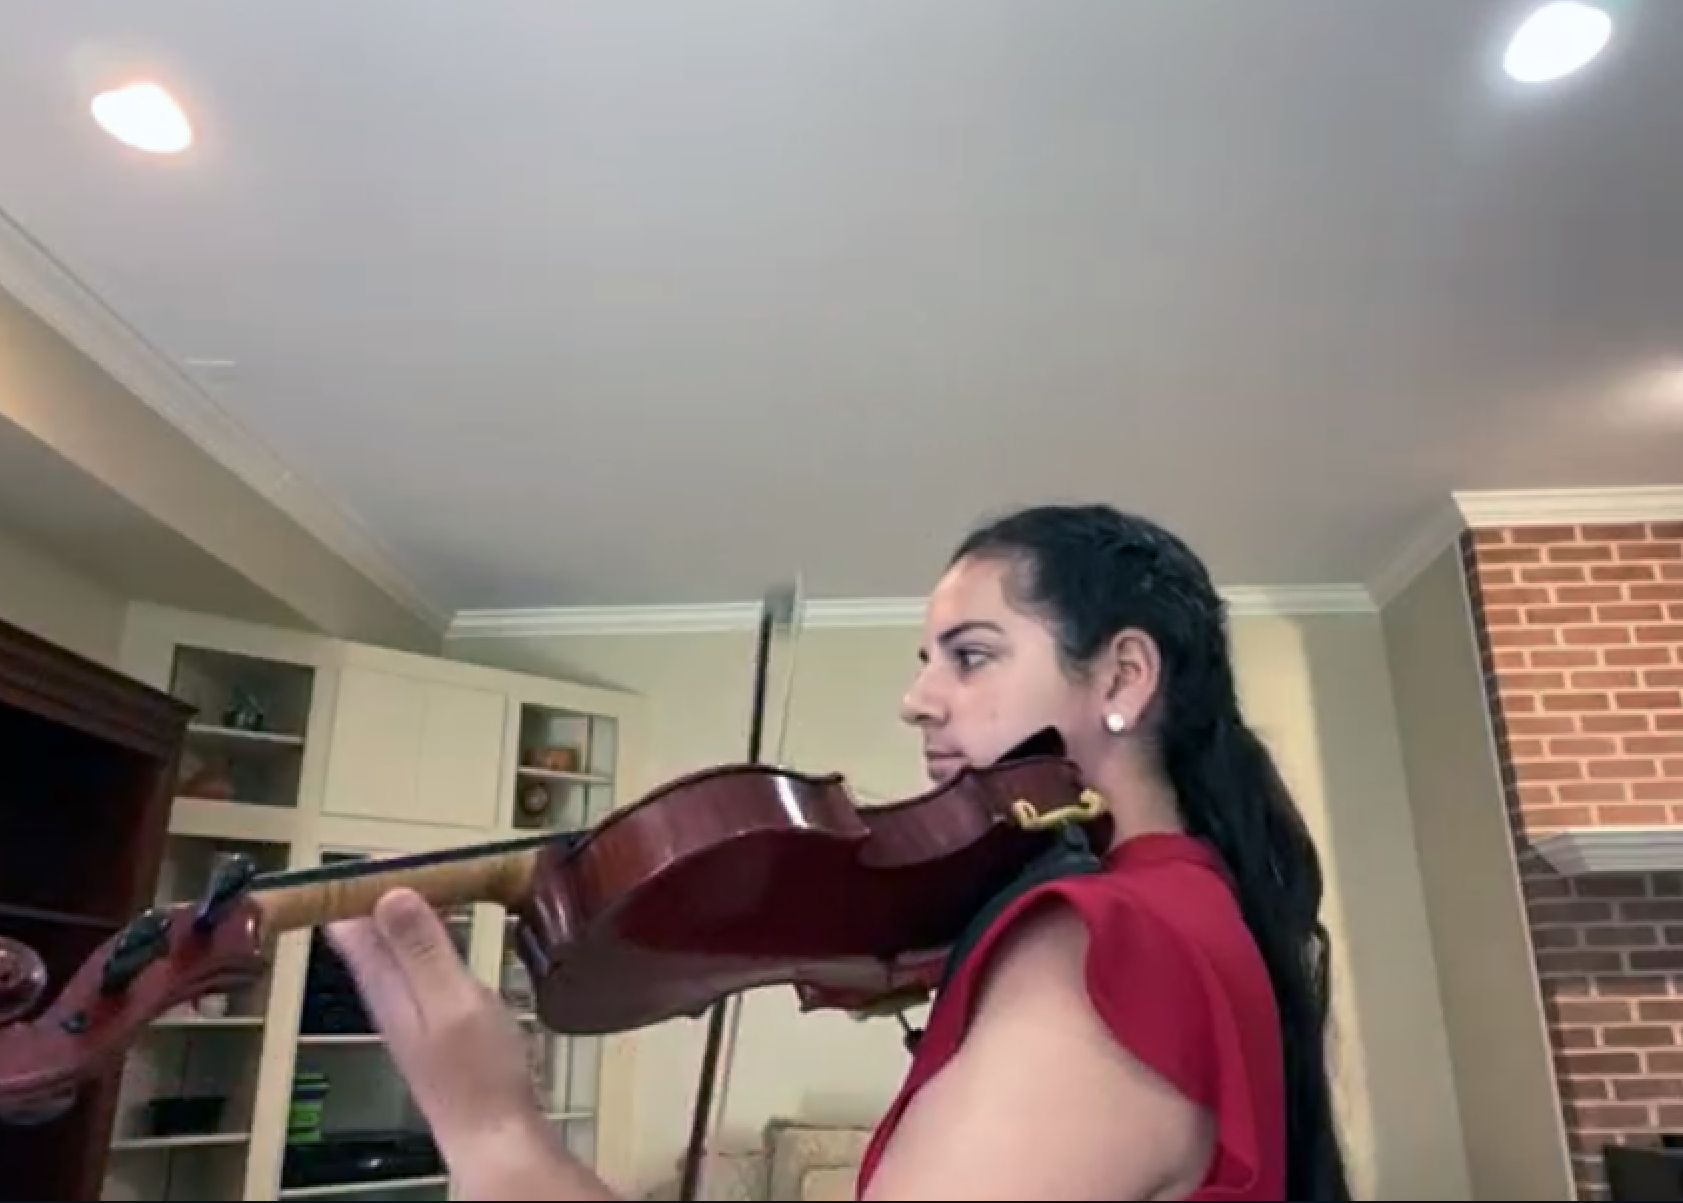 Girl in Red Playing Violin